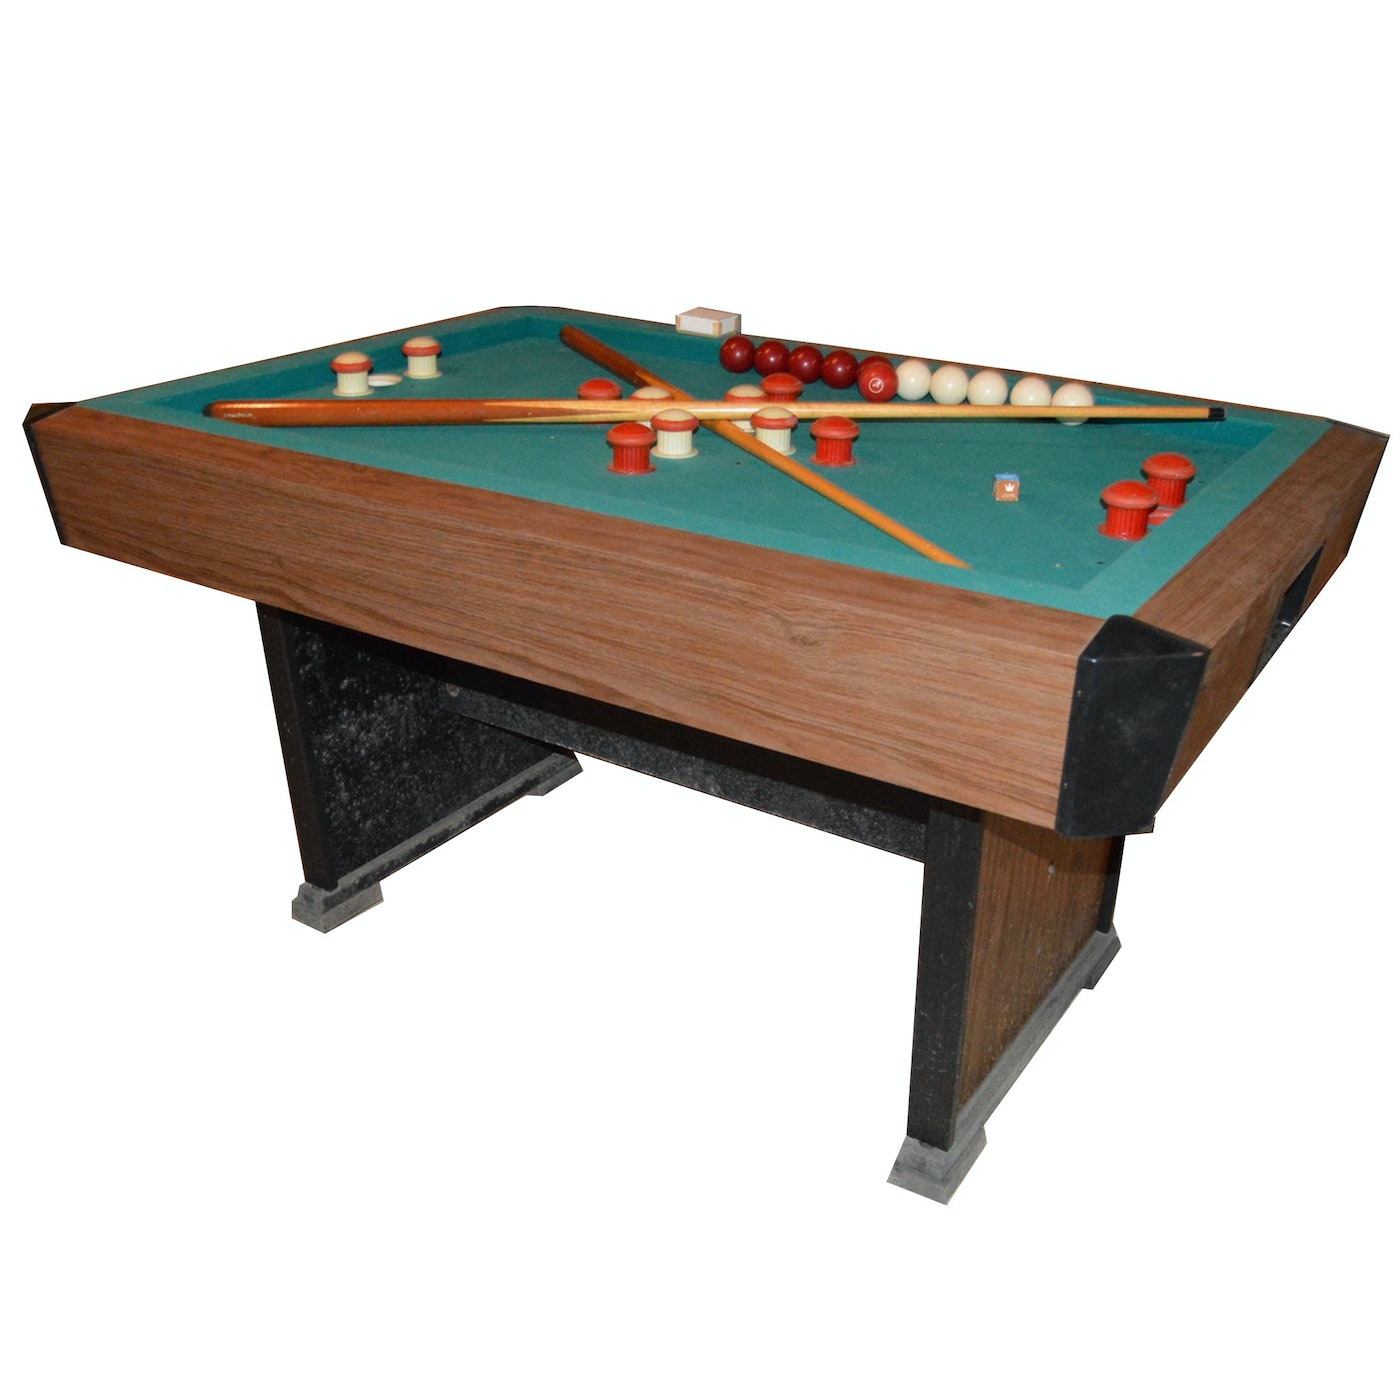 Celebrity bumper pool table by brunswick ebth - Bumper pool bumpers ...